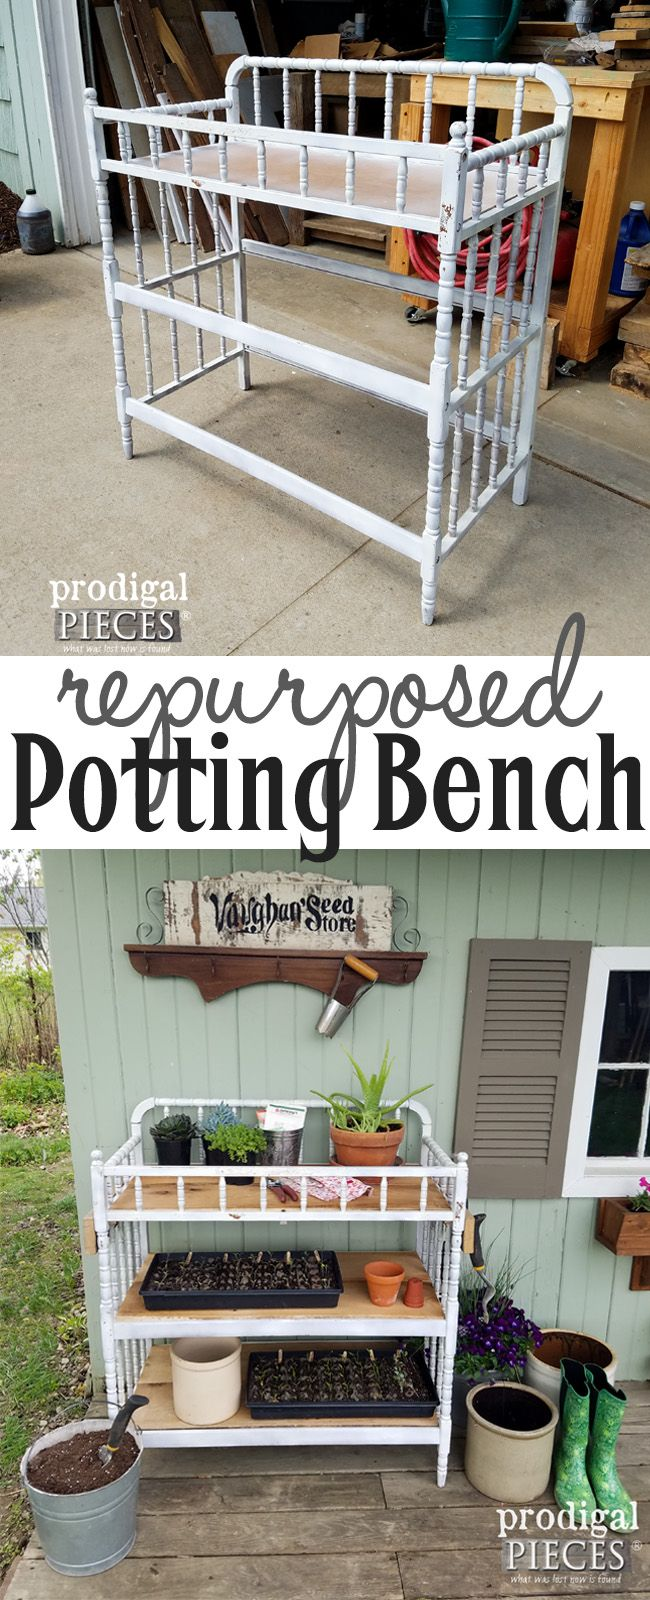 Don't toss your old changing table! Turn it into a repurposed potting bench. Details at Prodigal Pieces | prodigalpieces.com